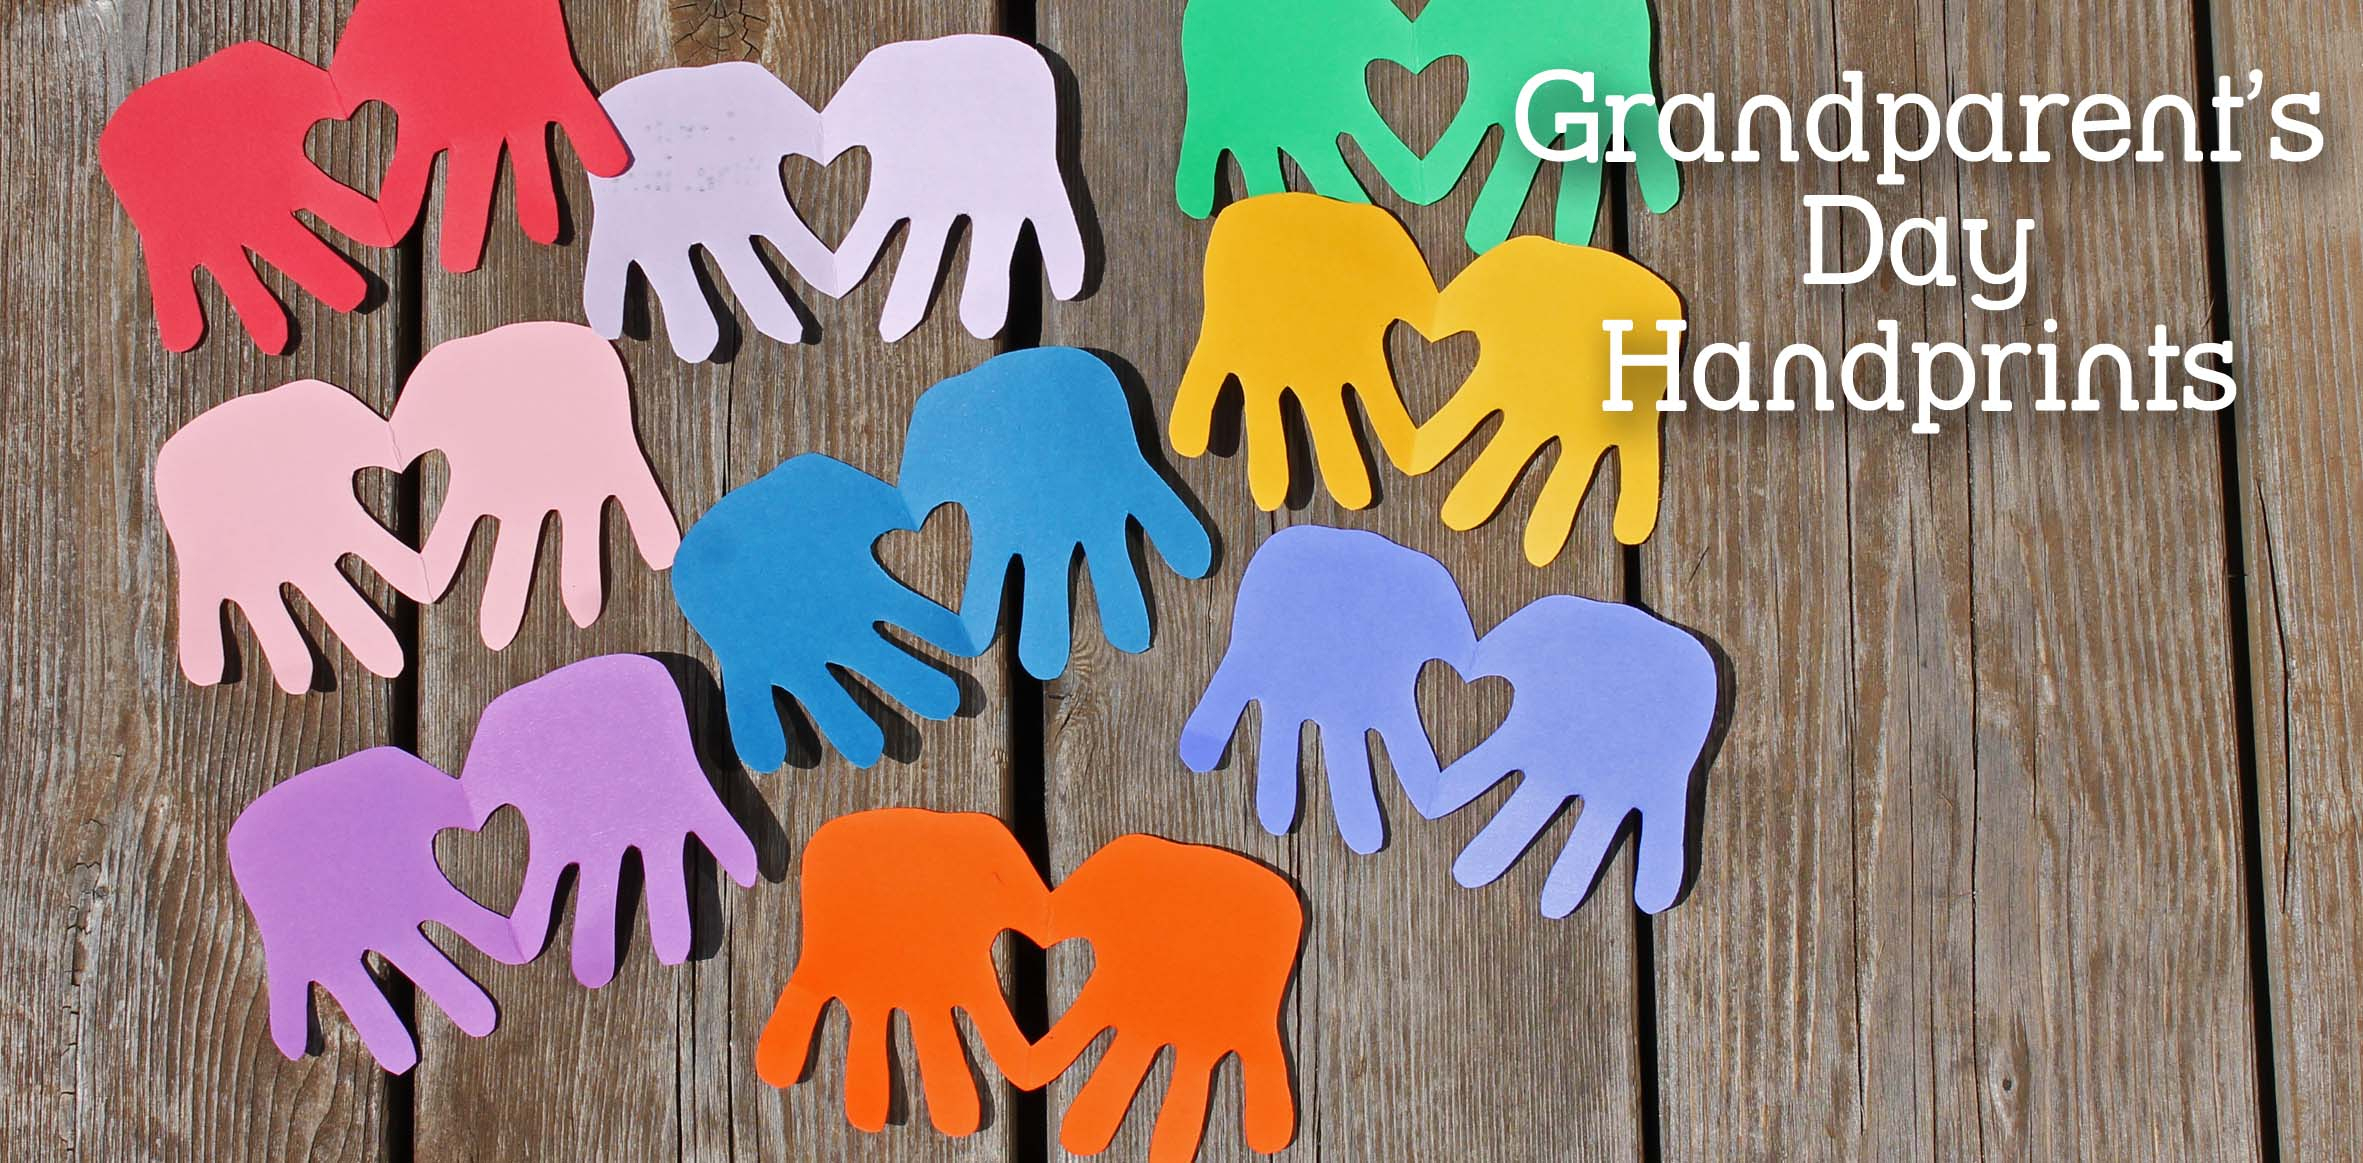 Printable Grandparents Day Cards - Grandparents Day Cards Printable Free